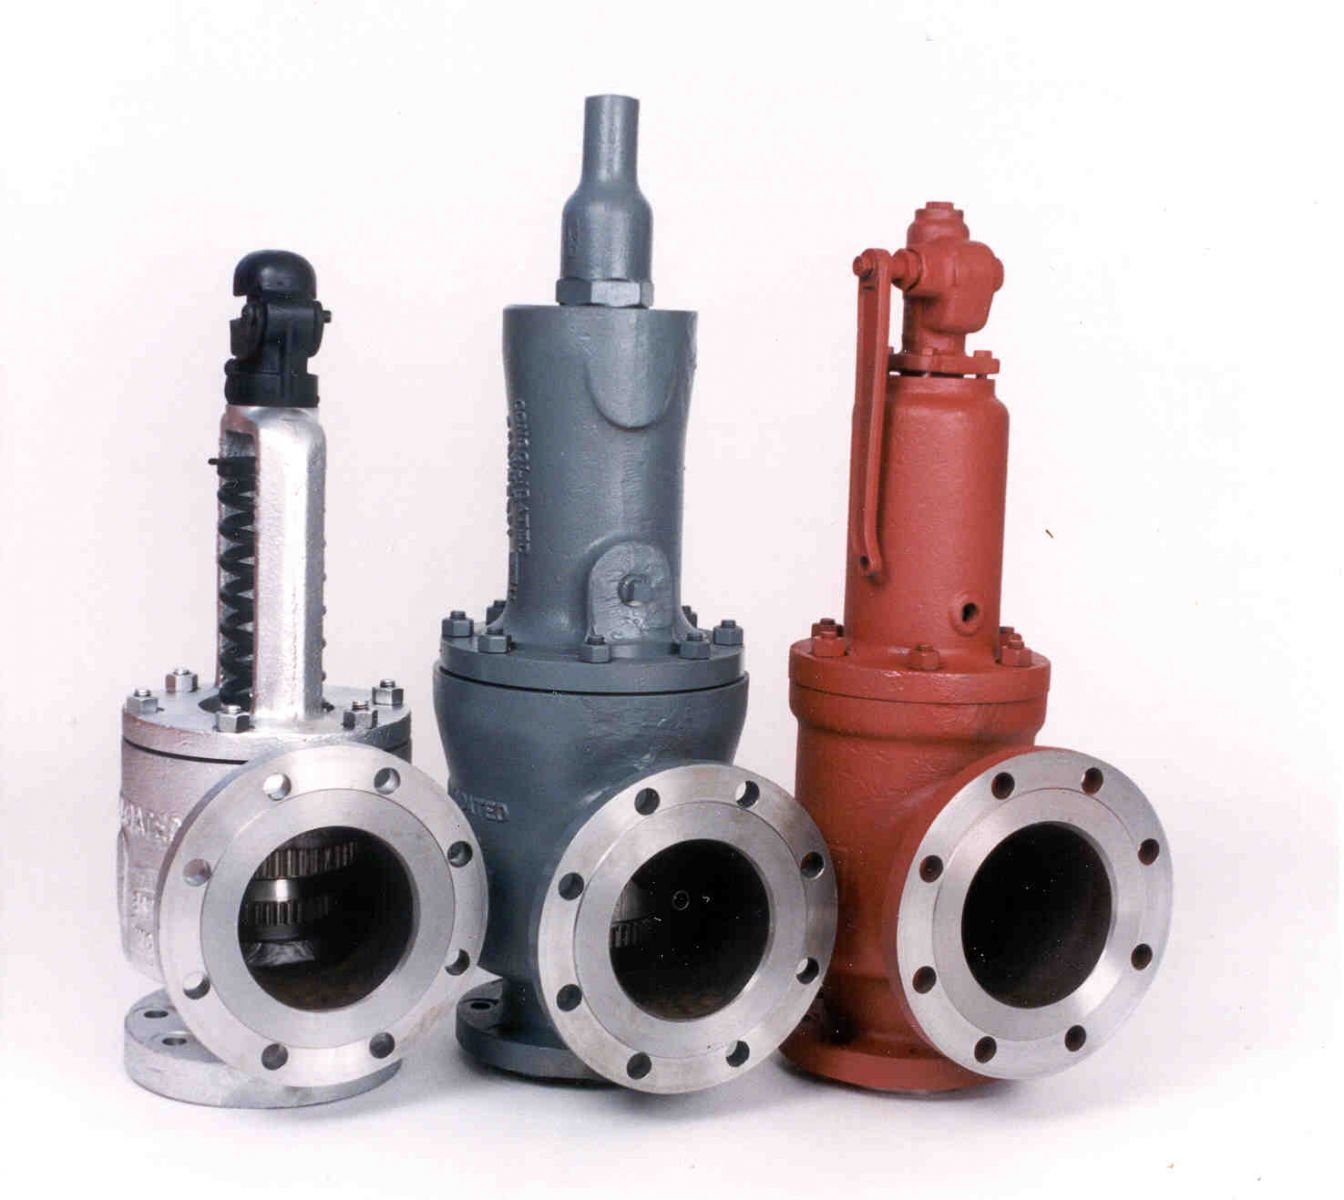 Selection of Safety Valves in Different Areas